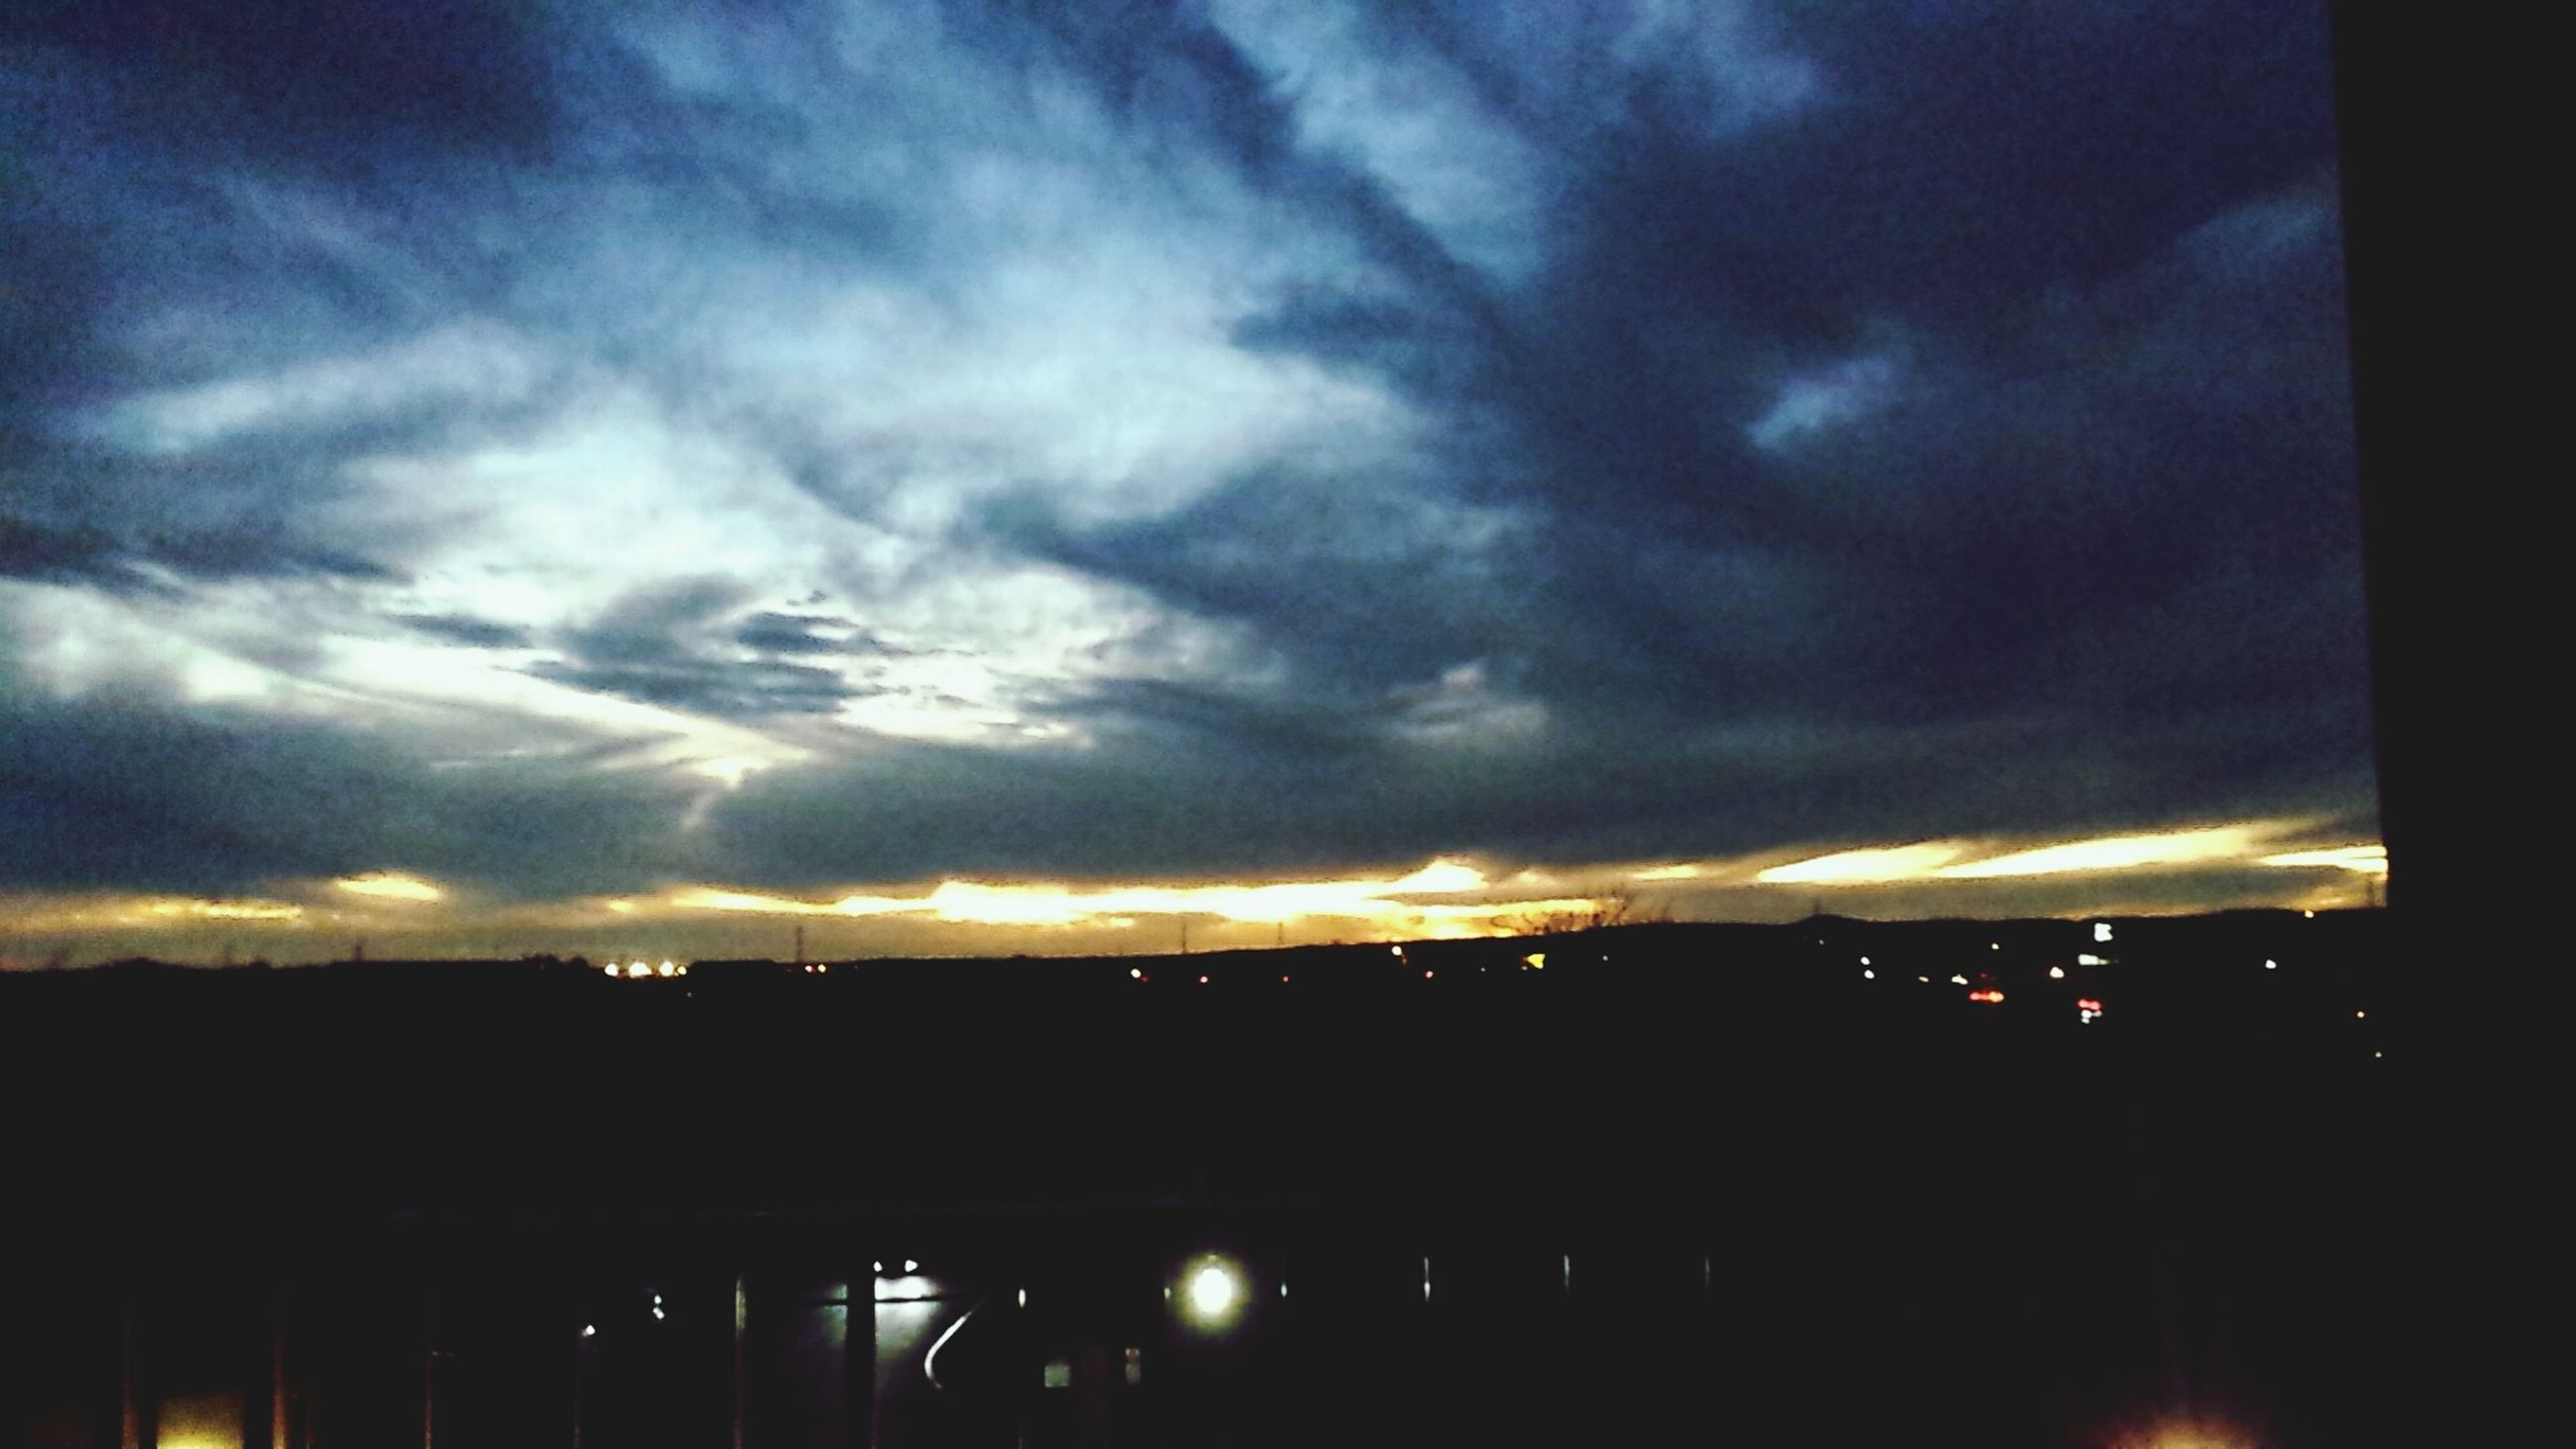 sky, sunset, cloud - sky, silhouette, built structure, architecture, cloudy, dramatic sky, illuminated, cloud, dusk, building exterior, dark, low angle view, storm cloud, weather, overcast, atmospheric mood, outdoors, nature